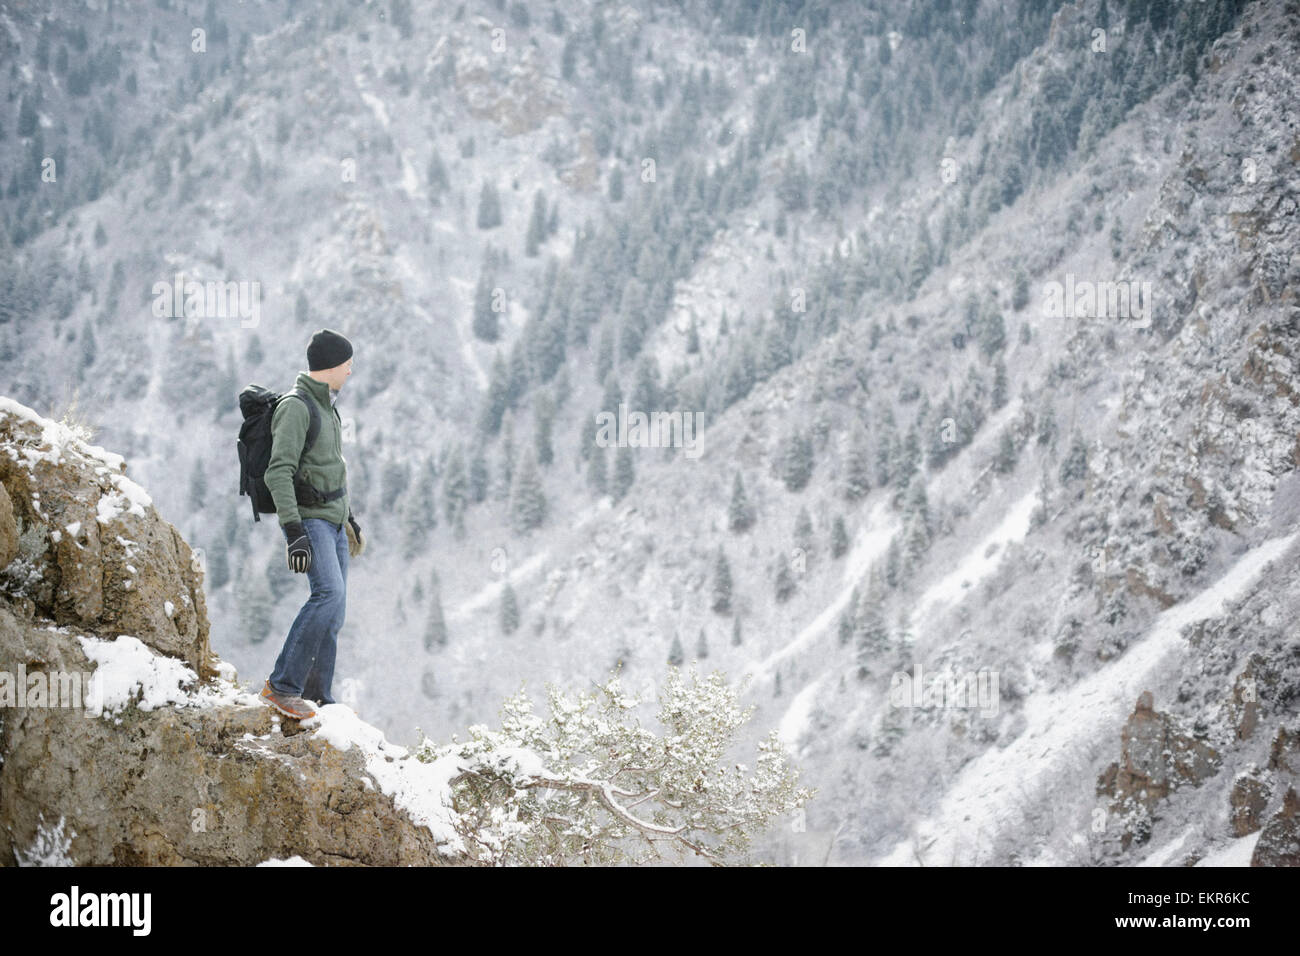 A man hiking in the mountains standing looking into a valley. - Stock Image